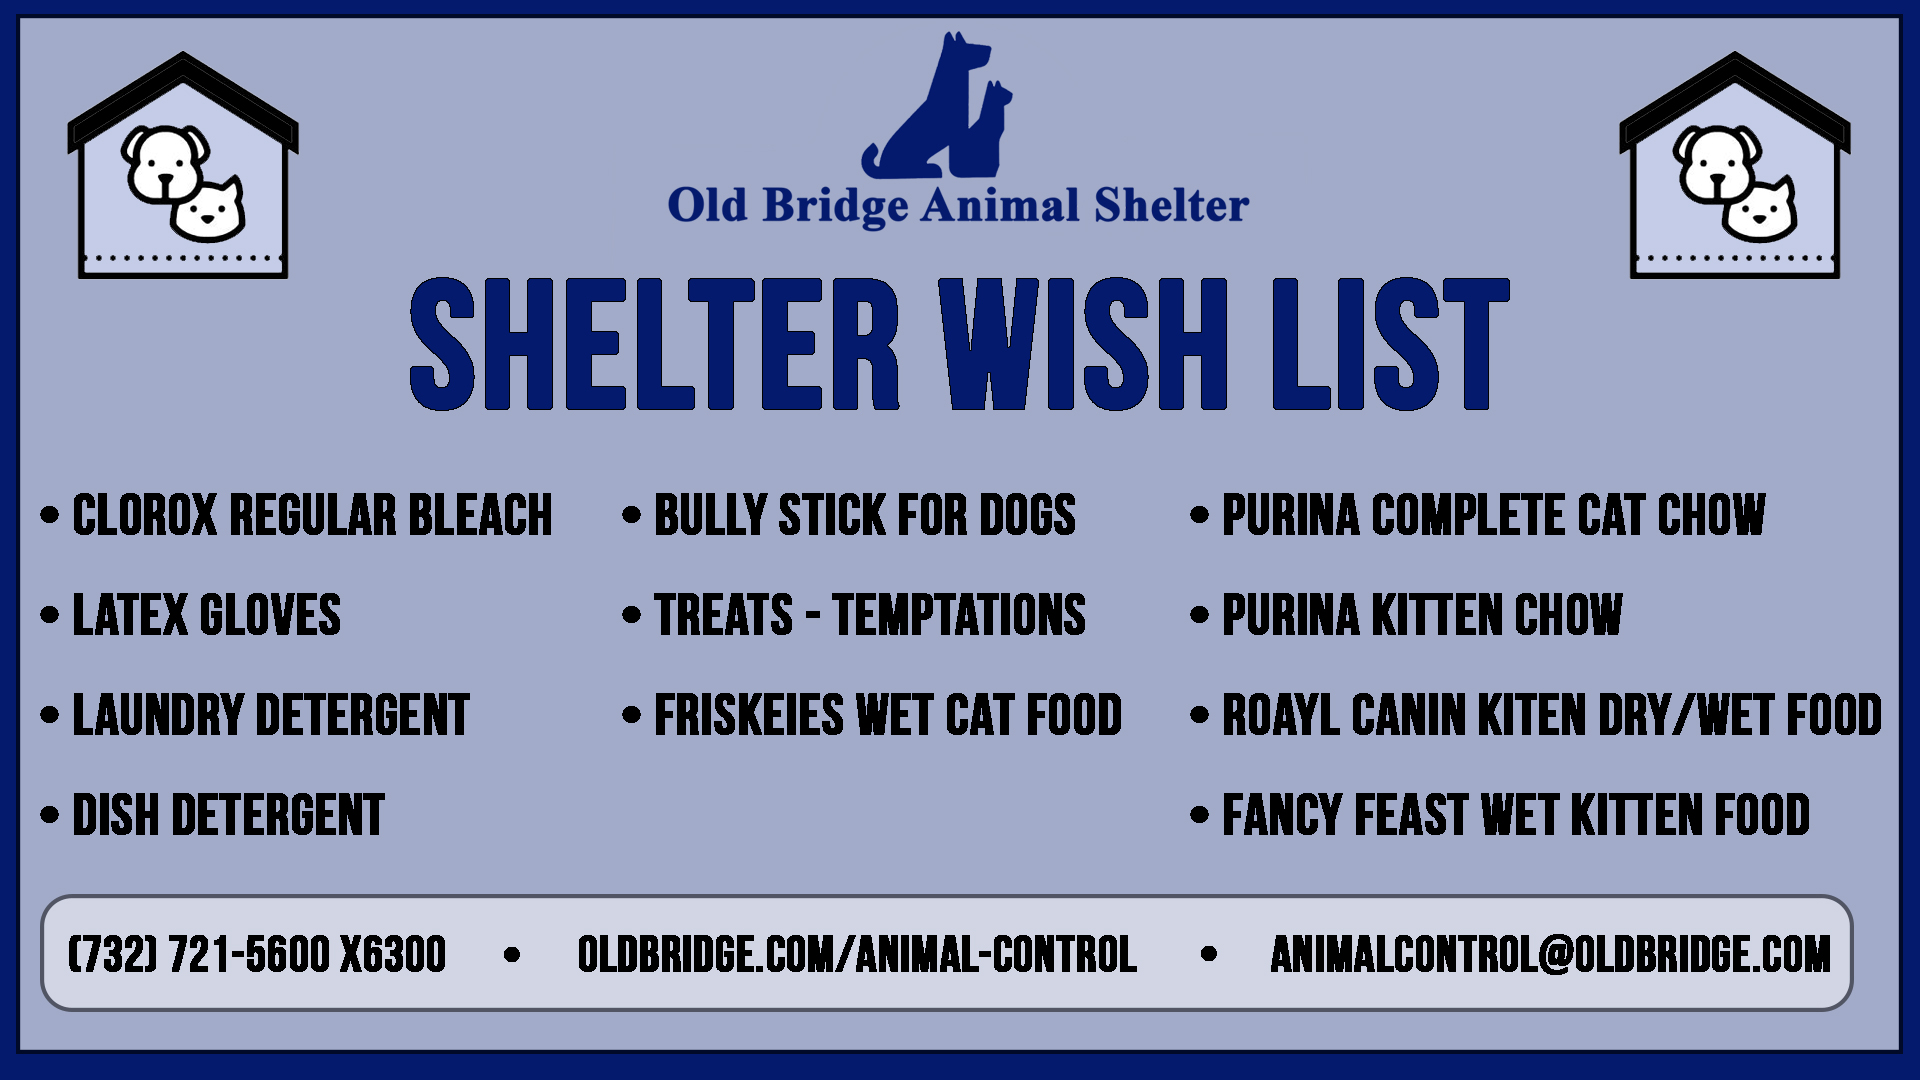 A graphic containing the wish list information for the animal shelter